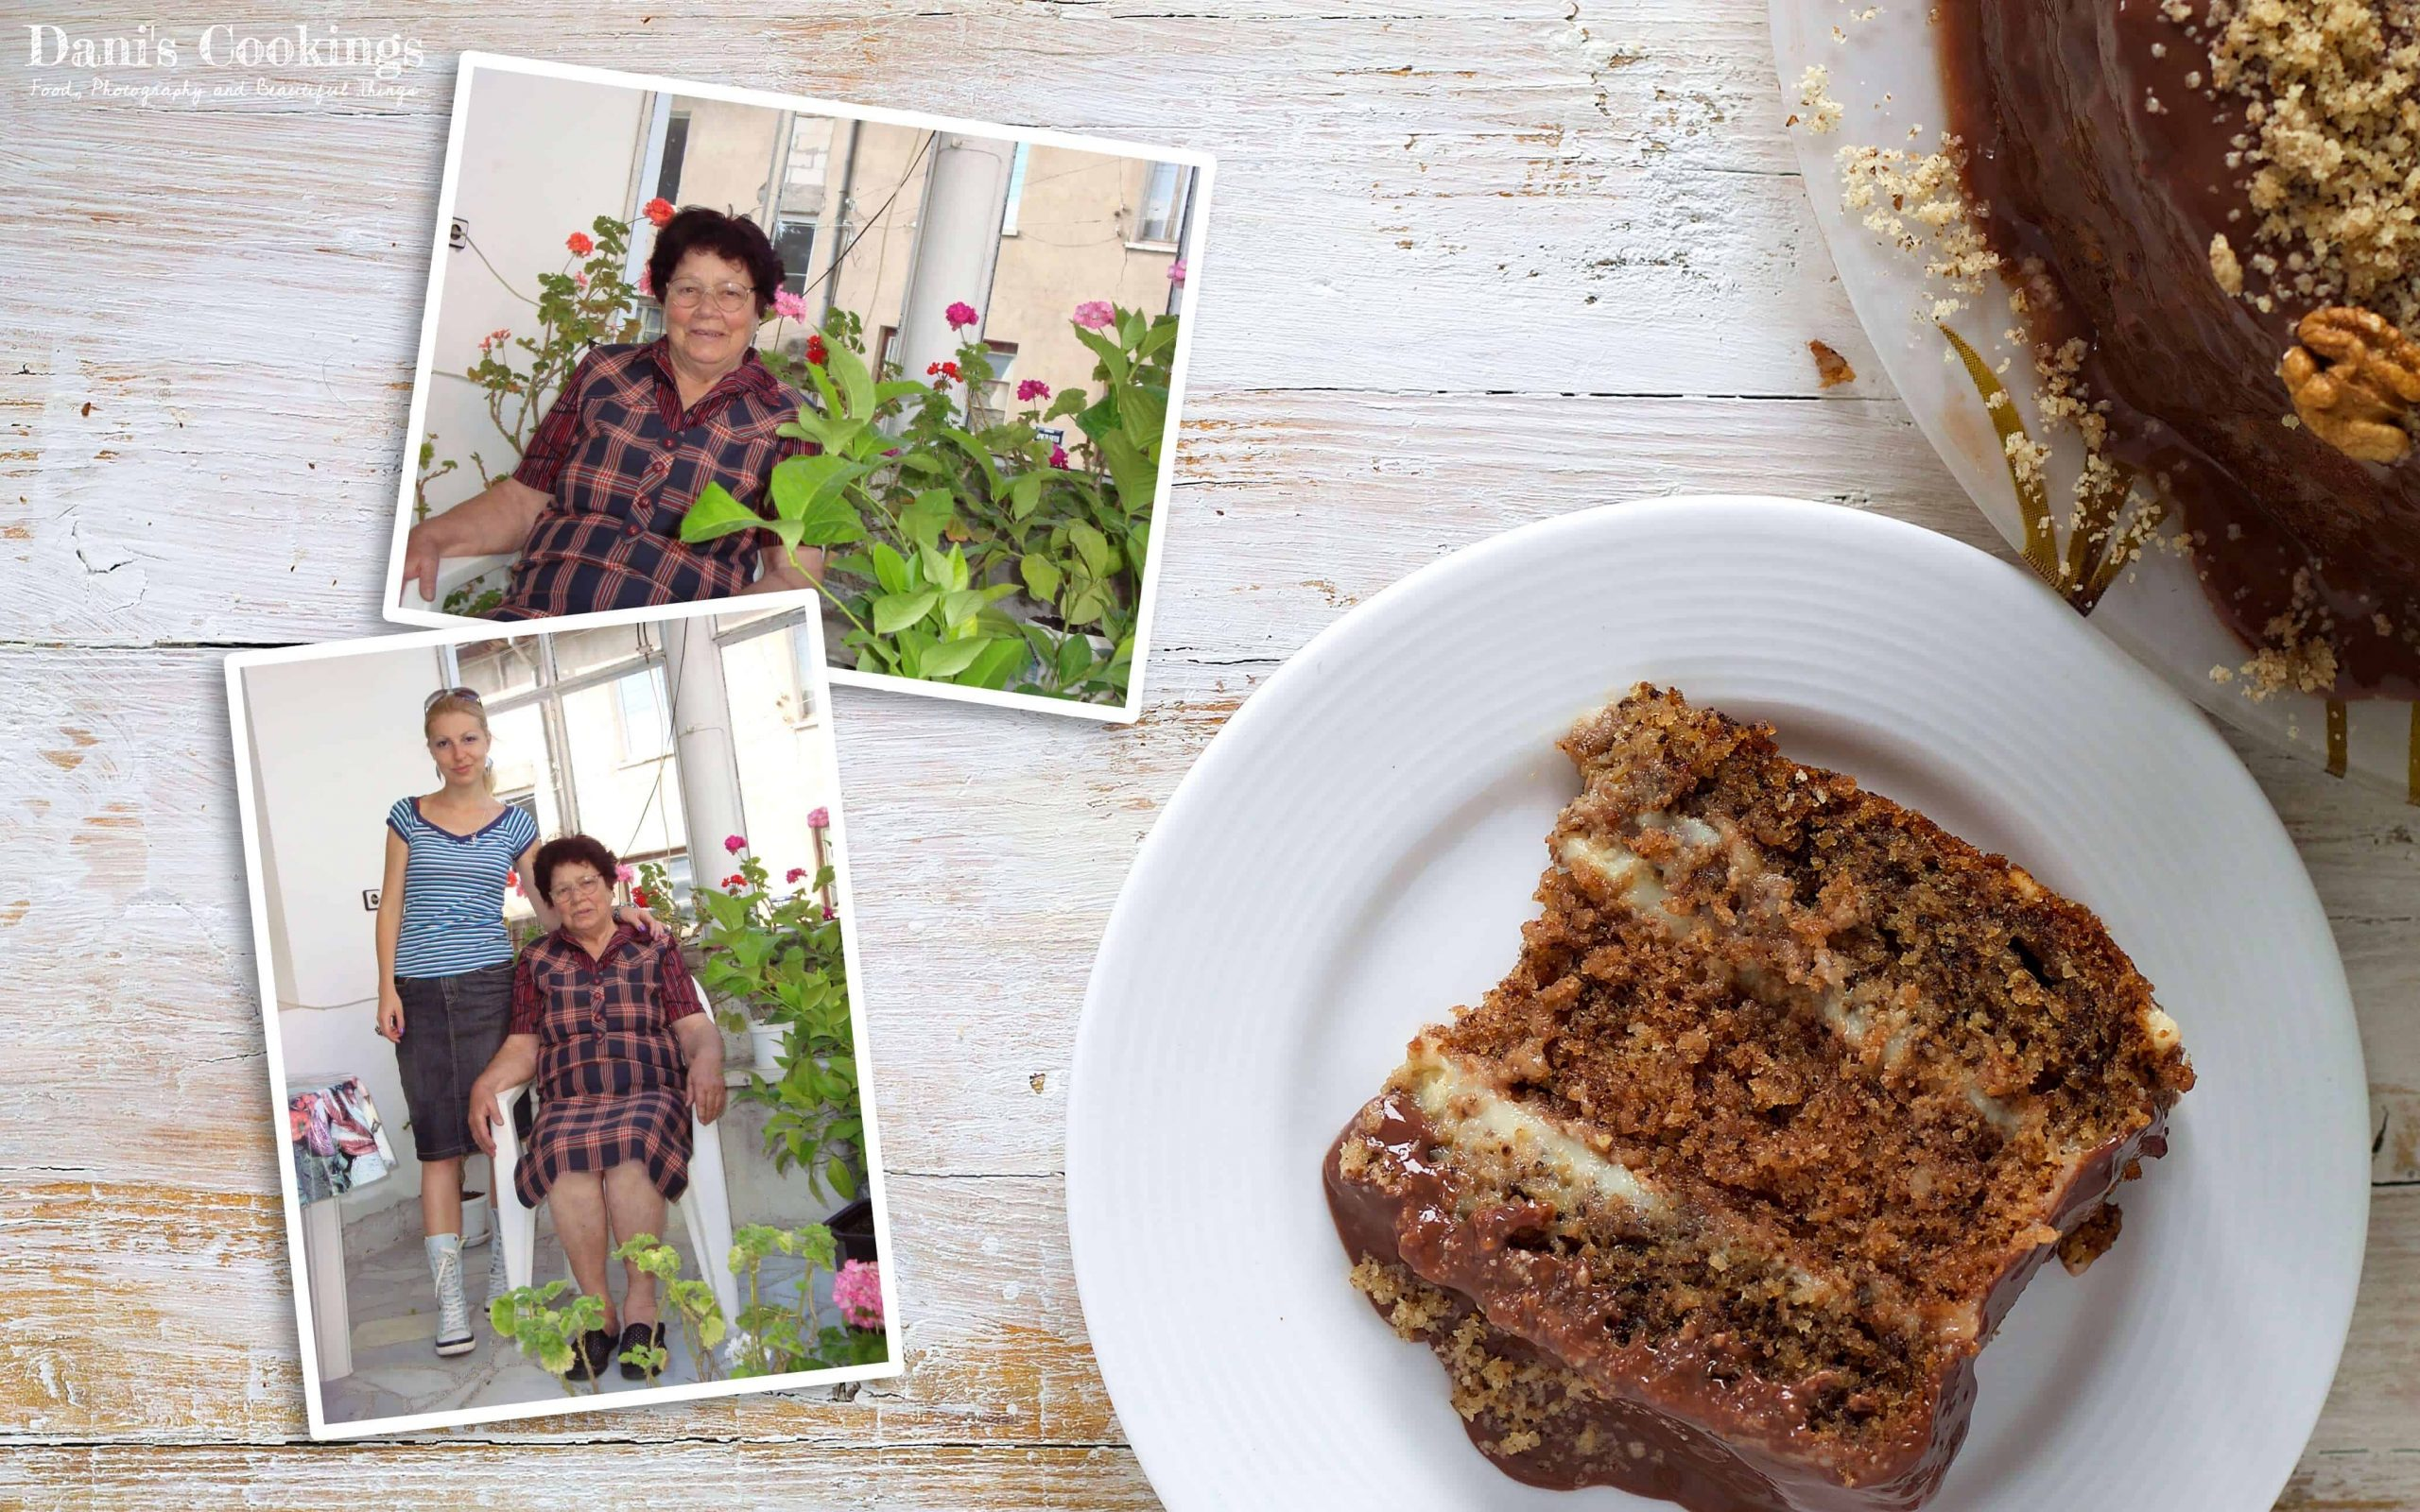 a piece of walnut cake and pictures of Daniela and her grandmother